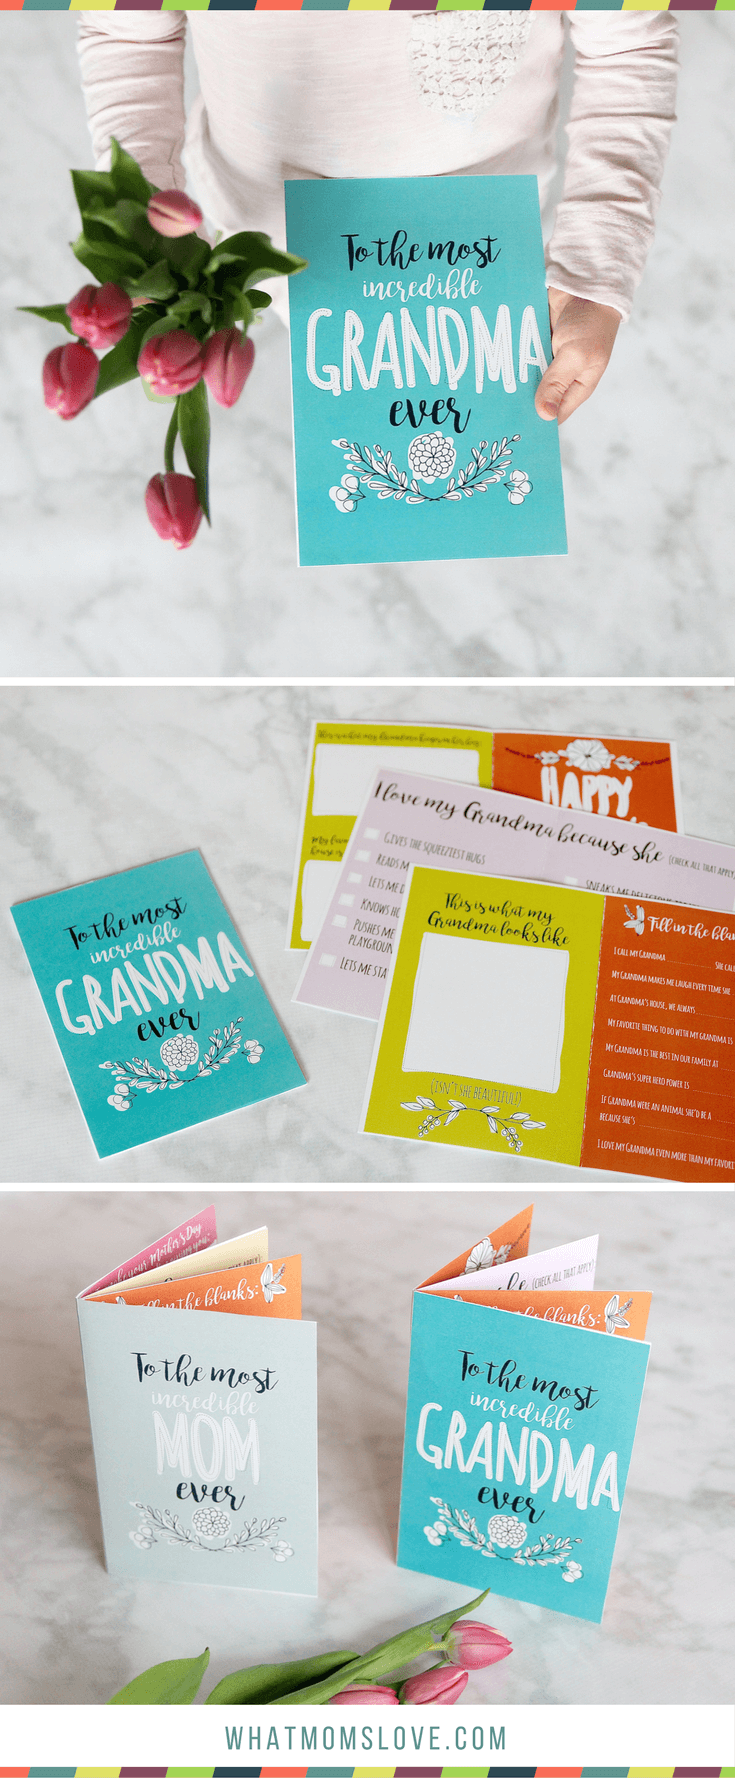 printable booklet for grandma - With Mother's Day right around the corner, we can't forget the special woman who started it all - Grandma! Kids are so fortunate if they have a grandma in their lives. These Mother's Day crafts for Grandma are such a heartfelt way to show her some well-deserved love!